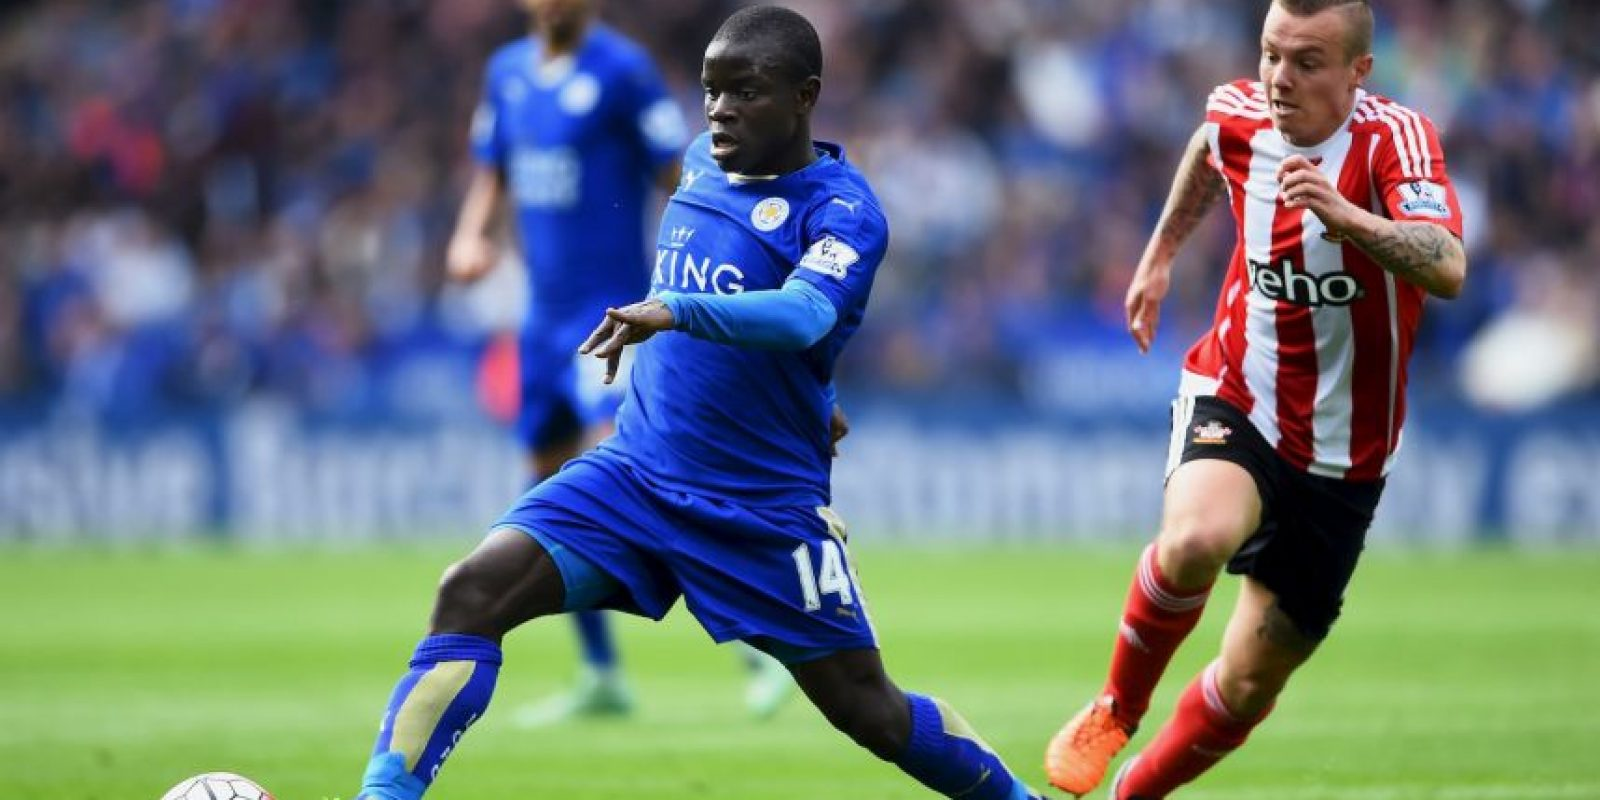 N'Goló Kante Foto: Getty Images